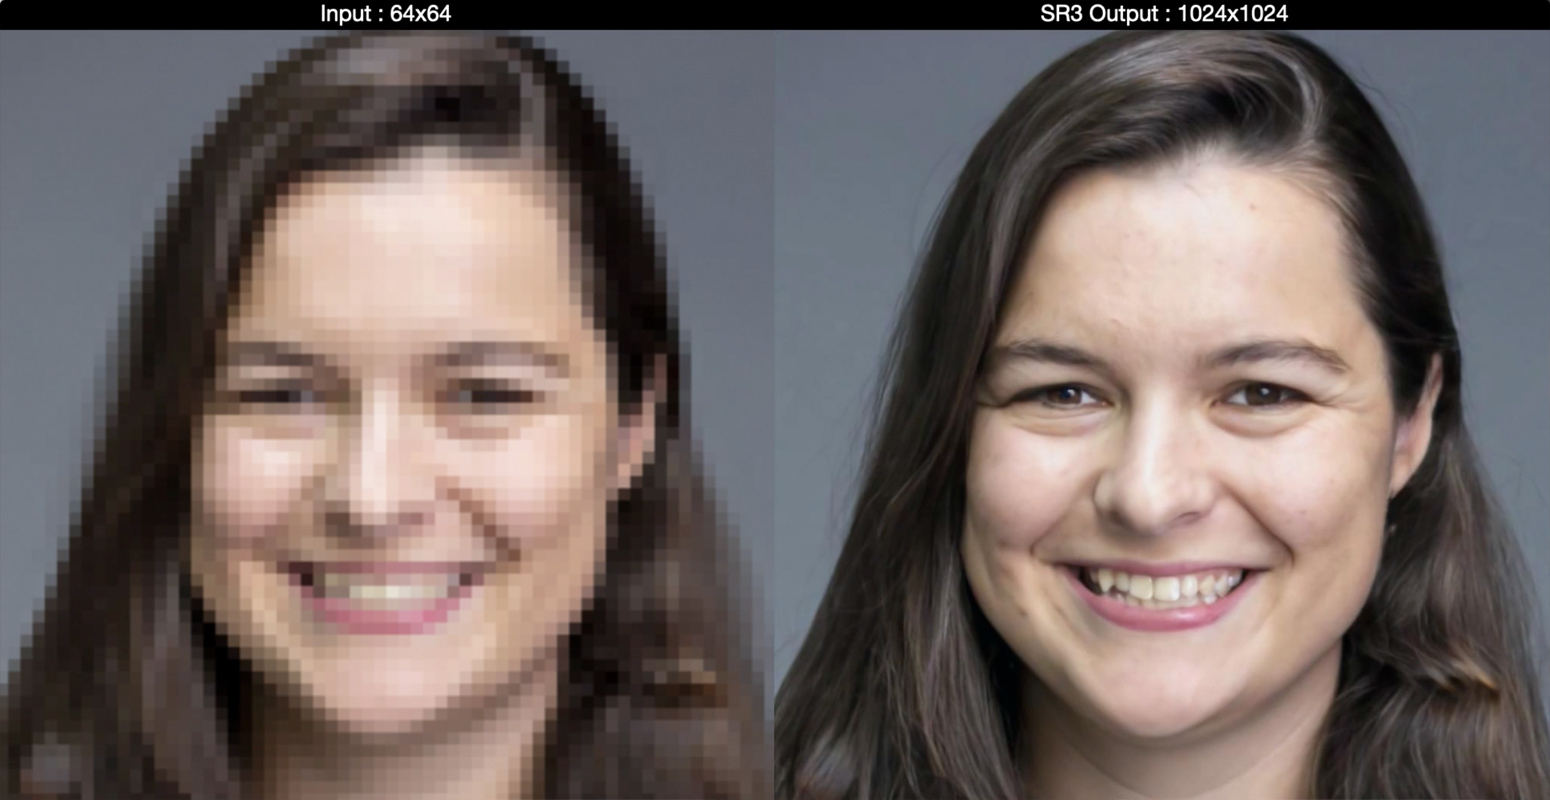 Google AI Turns Low-Res Images To High-Res - Super Resolution SR3 Model (1)